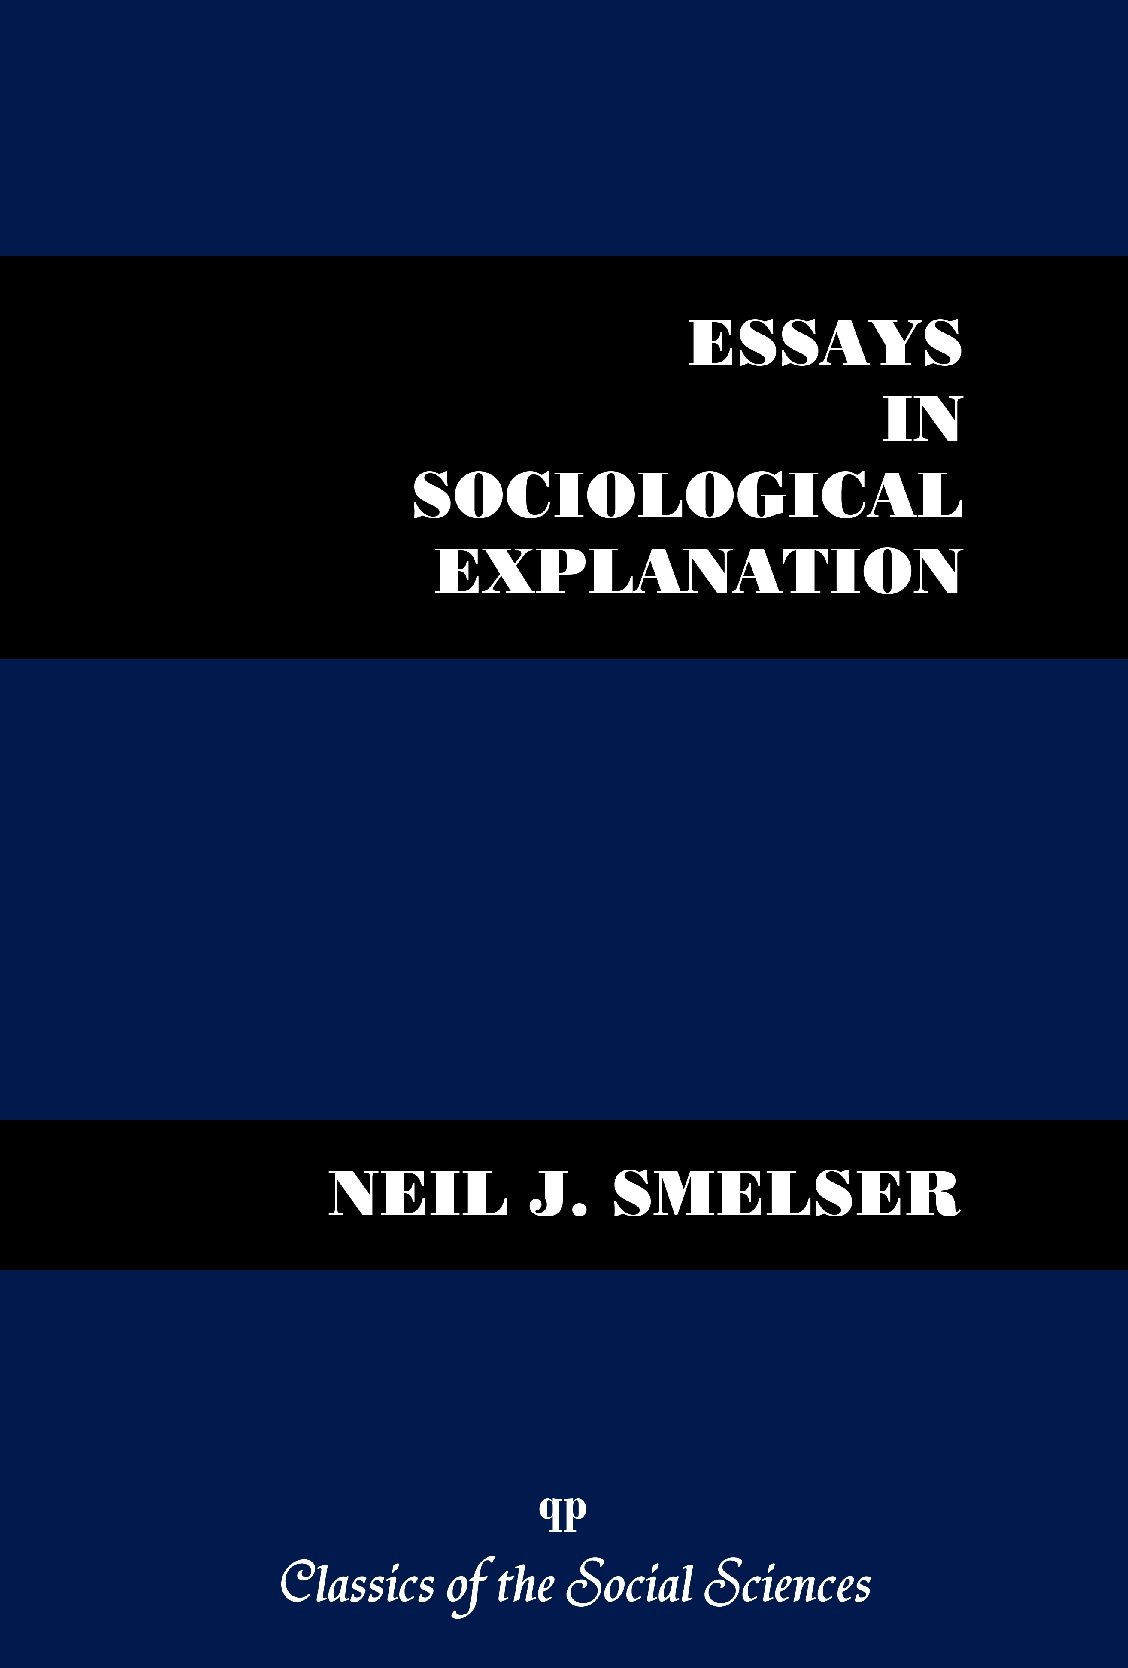 smelser essays in sociological explanation Proposed, and in the substance of the essay i apply this alternative to the sociological theory of talcott parsons parsons' essays in sociological theory (1954) versus smelser's essays in sociological explanation (1968) for smelser's increasing concentration on the relation between empirical evidence and theory.